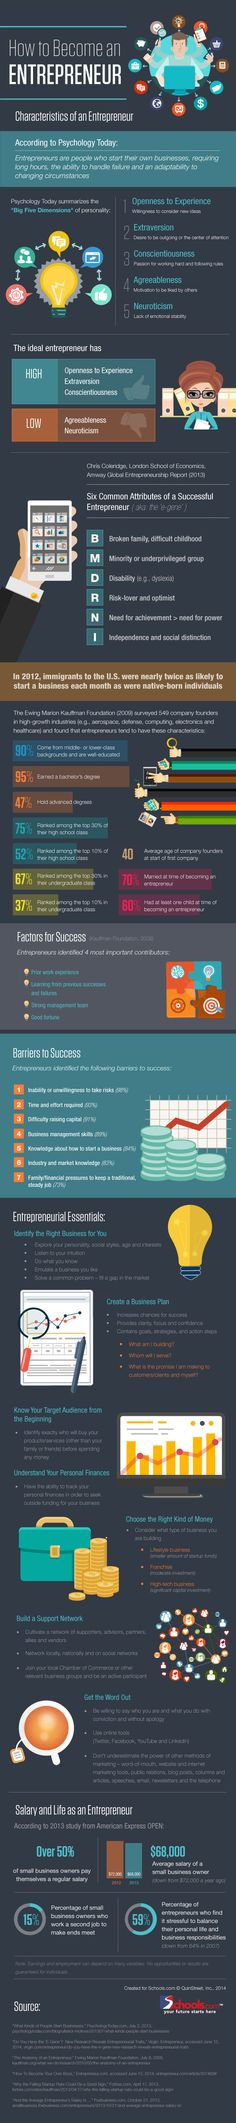 What Great Entrepreneurs Have in Common (Infographic) | Inc.com